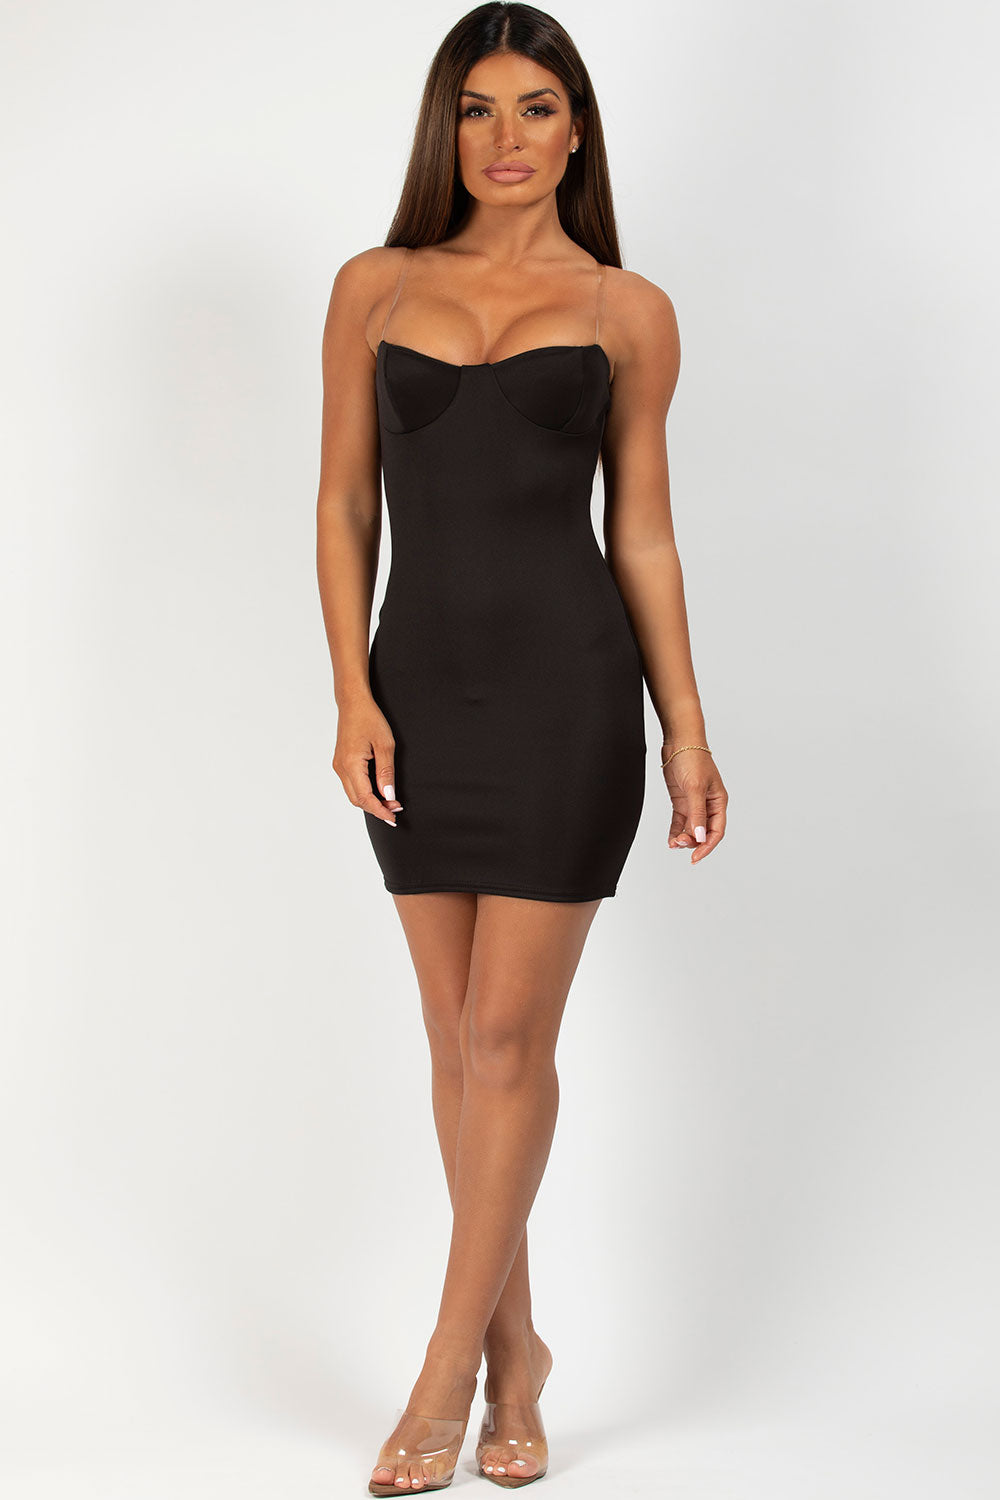 clear strap cup detail bodycon dress